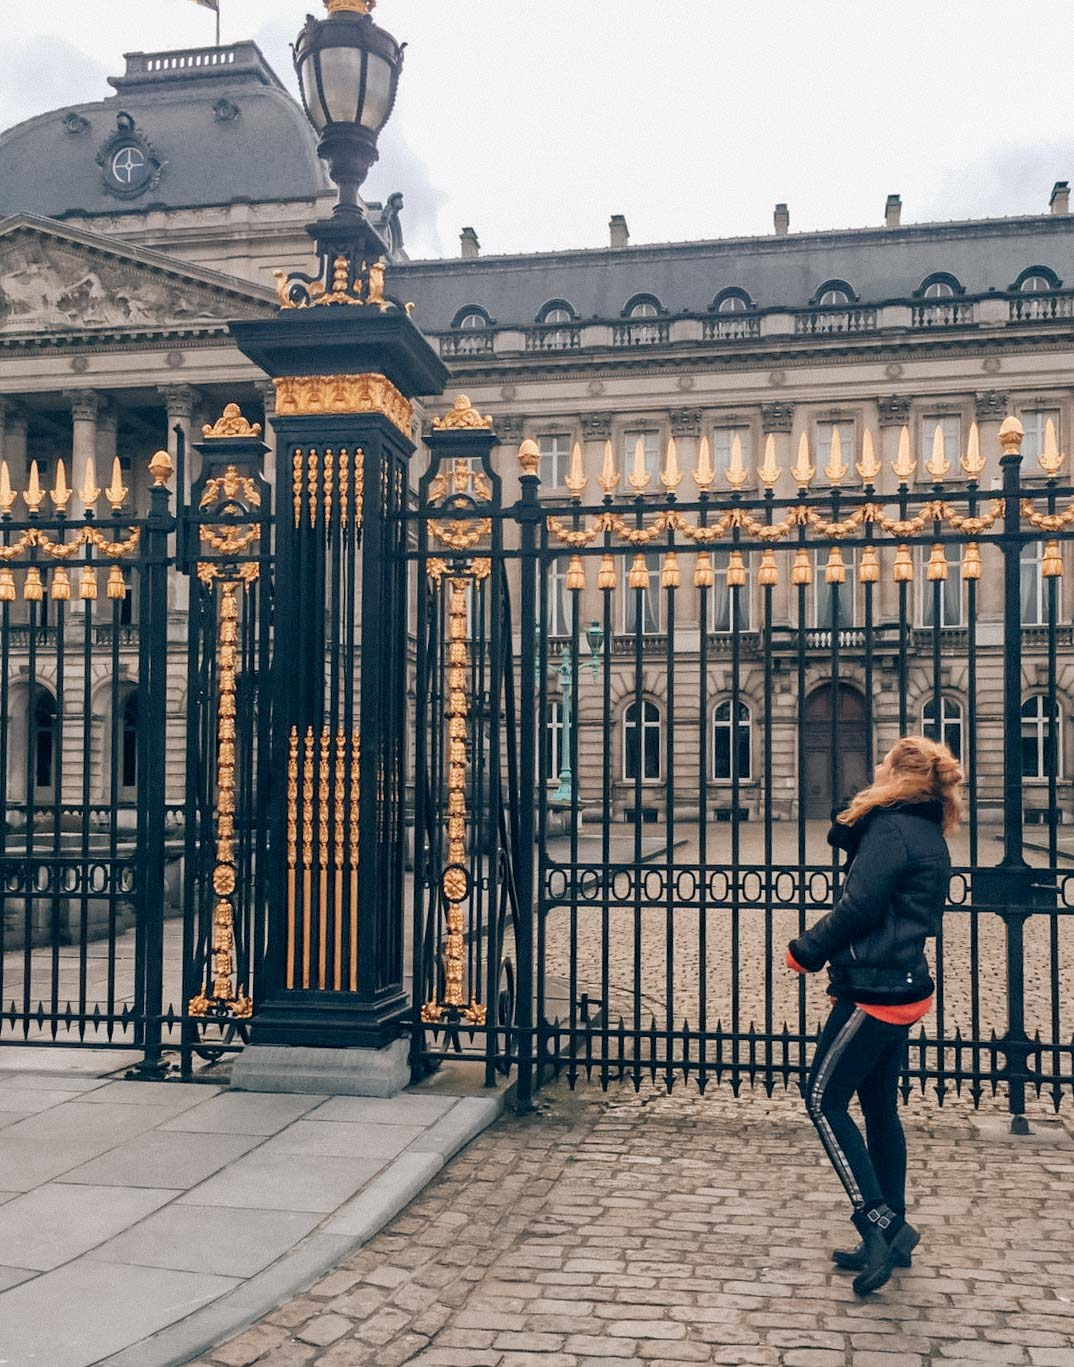 Royal palace of Brussels, golden details of the gate